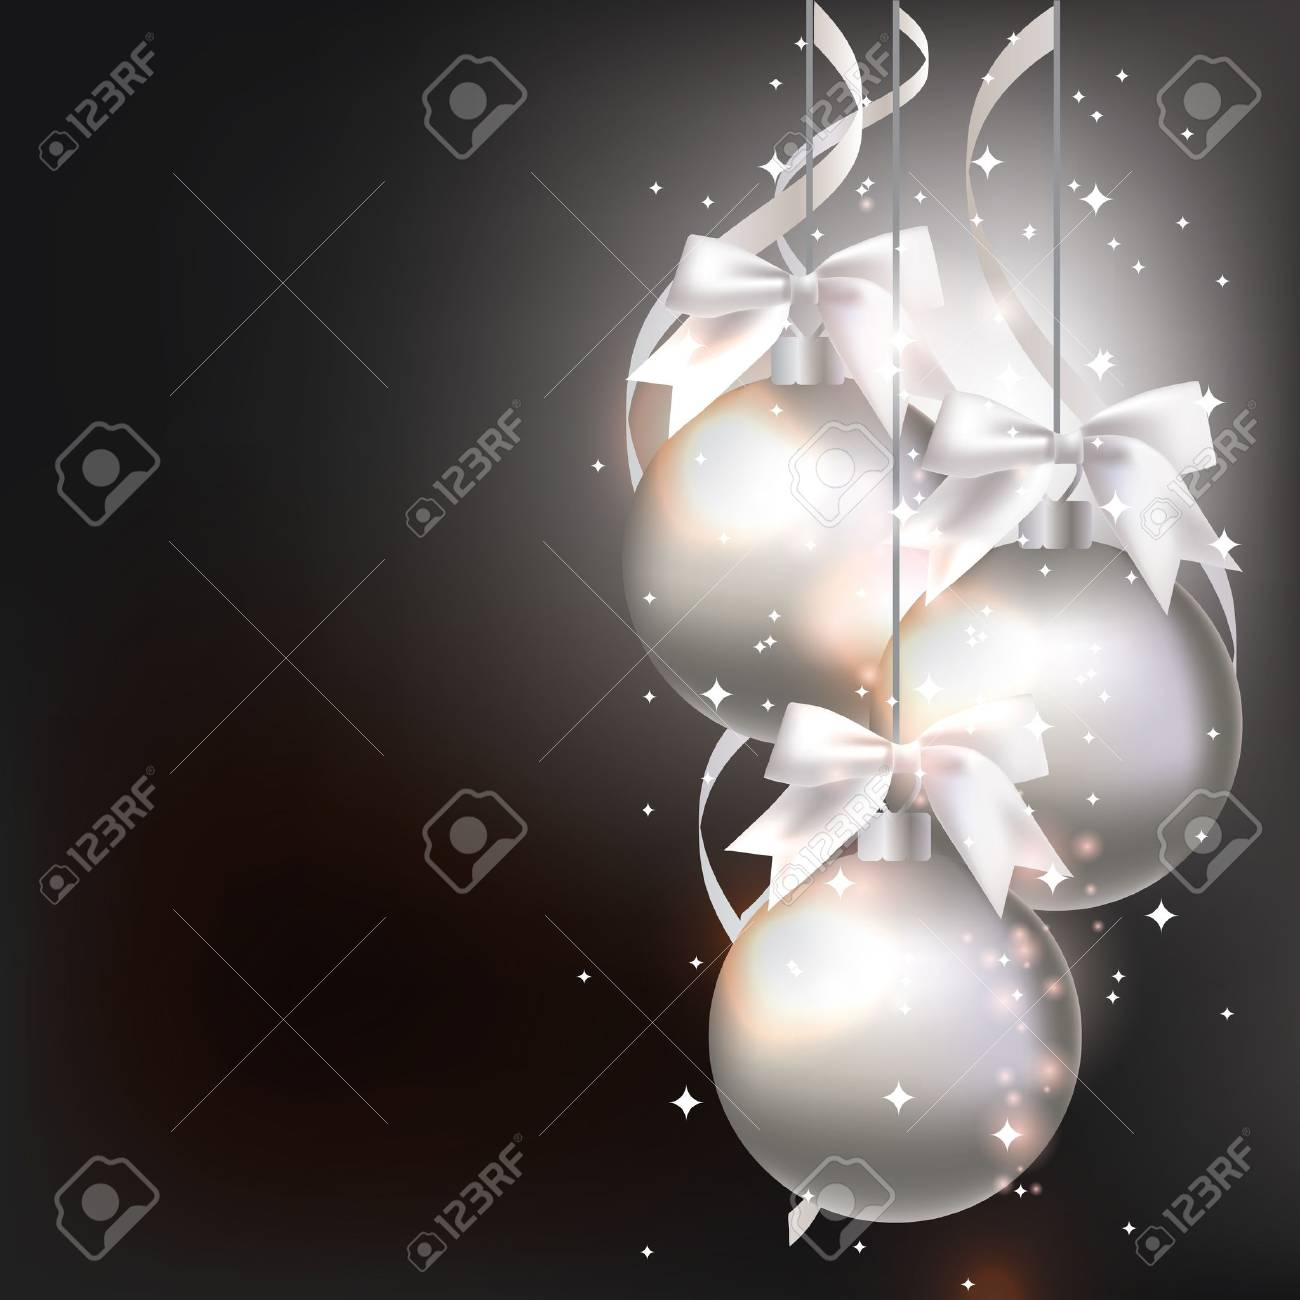 Christmas decorations on an abstract background Stock Vector - 14627574